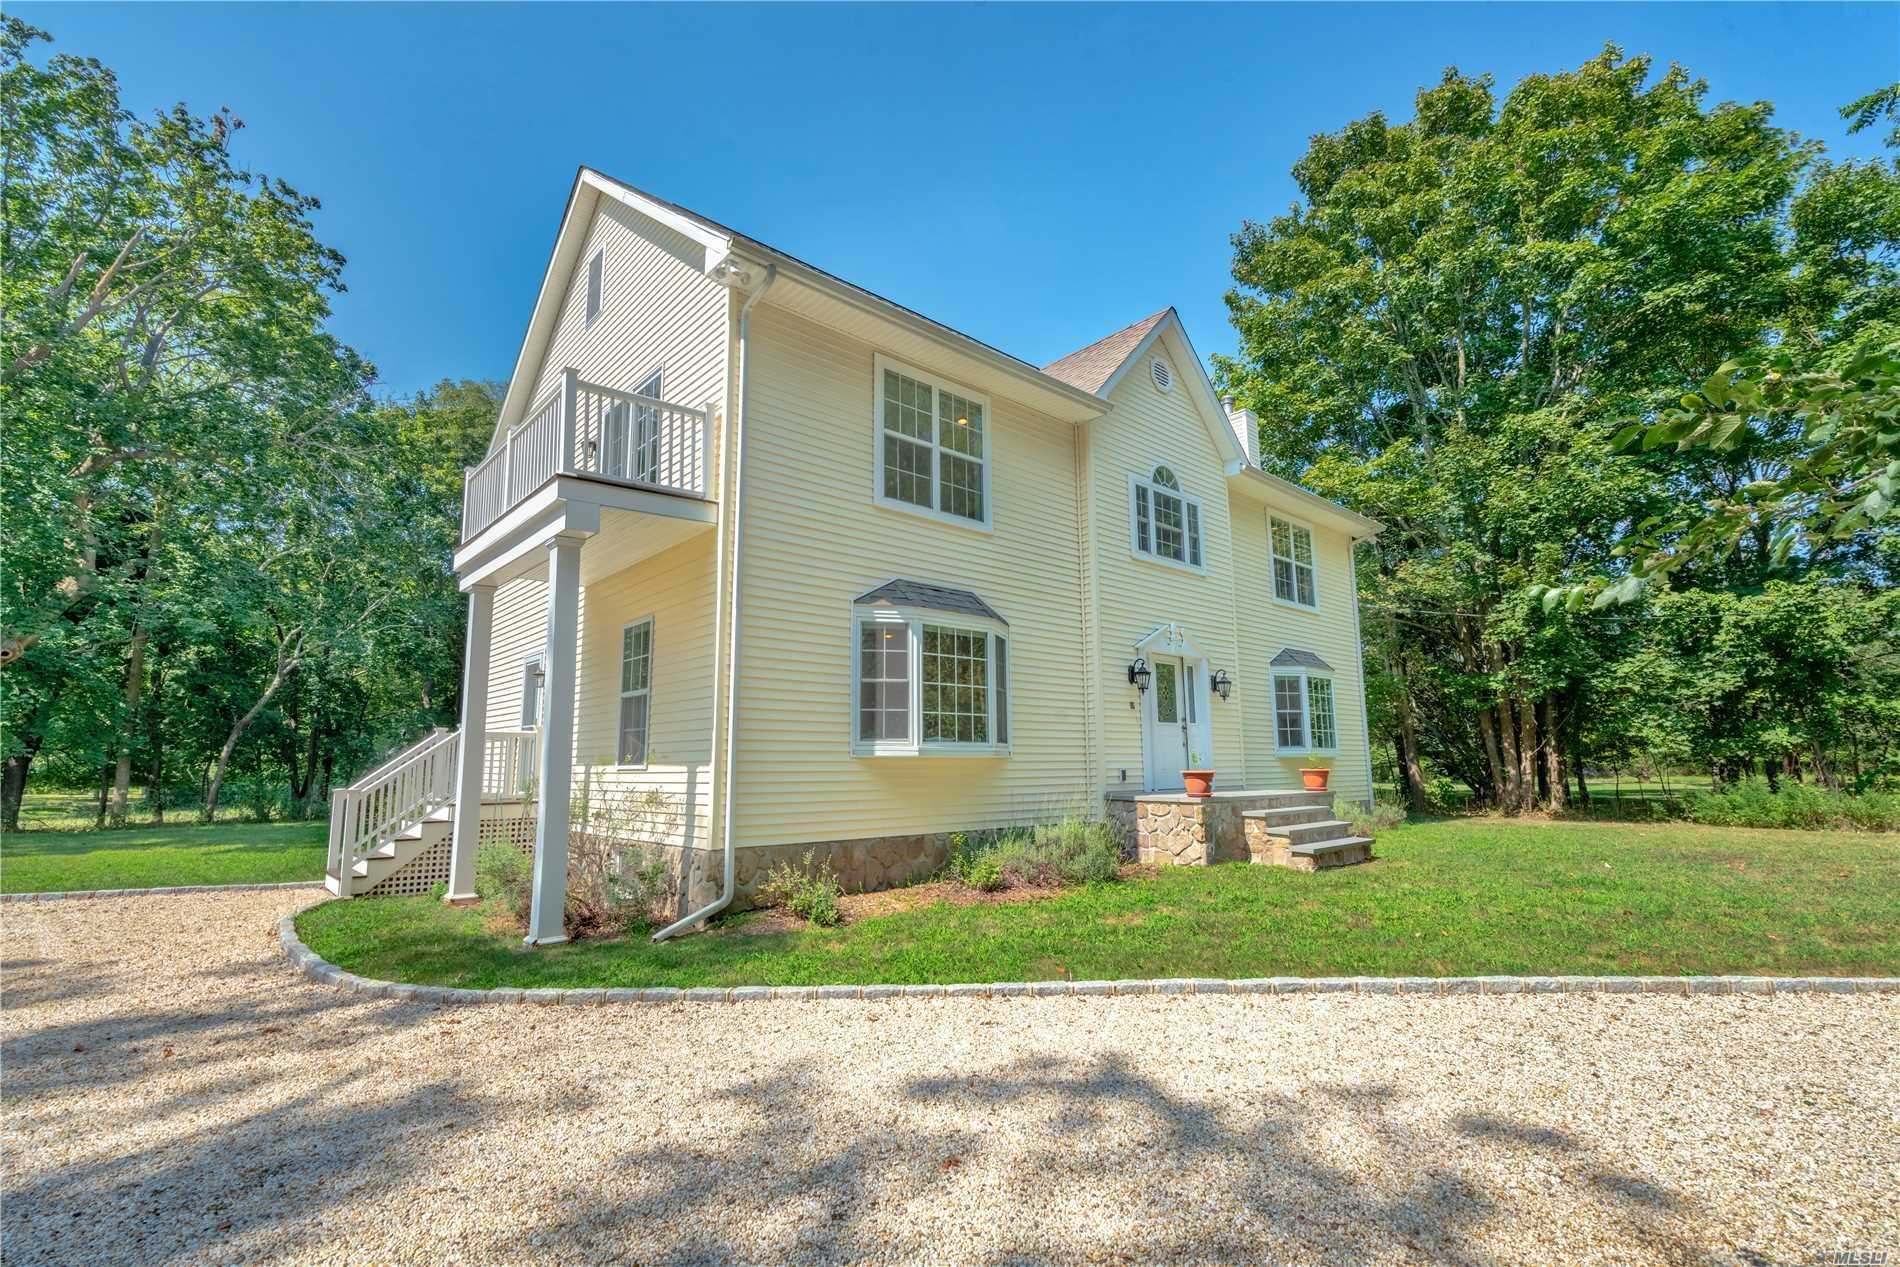 Built In 2006, Spacious Two Story Home Located On A Shy Acre With Room For A Pool Is Located In Orient-By-The-Sea And Is Walking Distance To A Private Association Beach On The Long Island Sound, Bayside Commercial Marina & Orient State Park. The Interior Features Cherry Wood Floors, Granite Countertops, Eat-In-Kitchen, Formal Dining Room, Living Room, Separate Den, Two Guest Bedrooms And Master En Suite With Walk-In-Closets And Balcony. Move In & Enjoy.